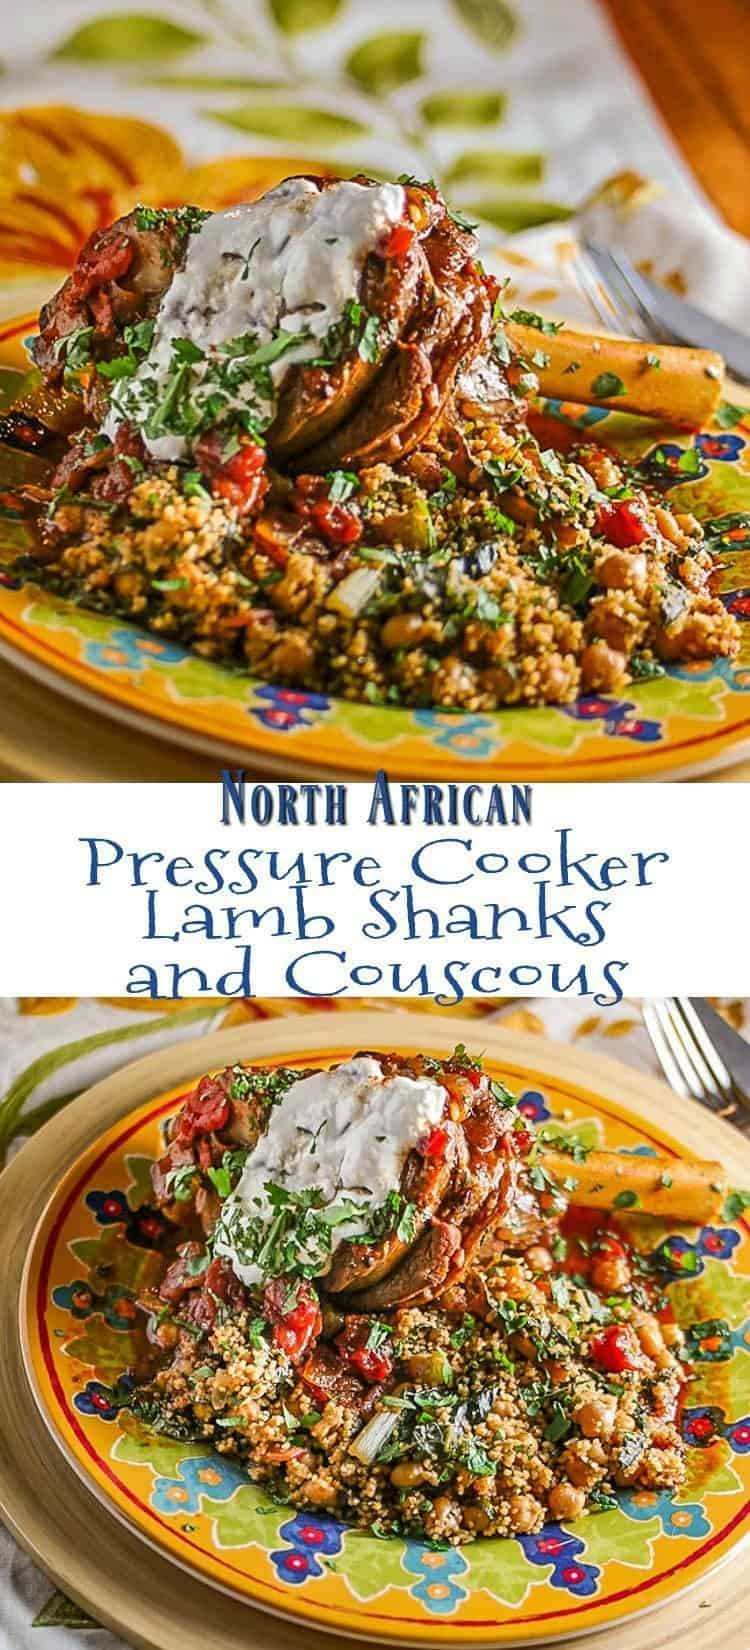 Pressure Cooker Lamb Shanks and Couscous Pin - Bold North African flavors sing in this substantial lamb and couscous dish prepared in an hour using a pressure cooker... #pressurecooker #instantpot #lambshanks #NorthAfrican